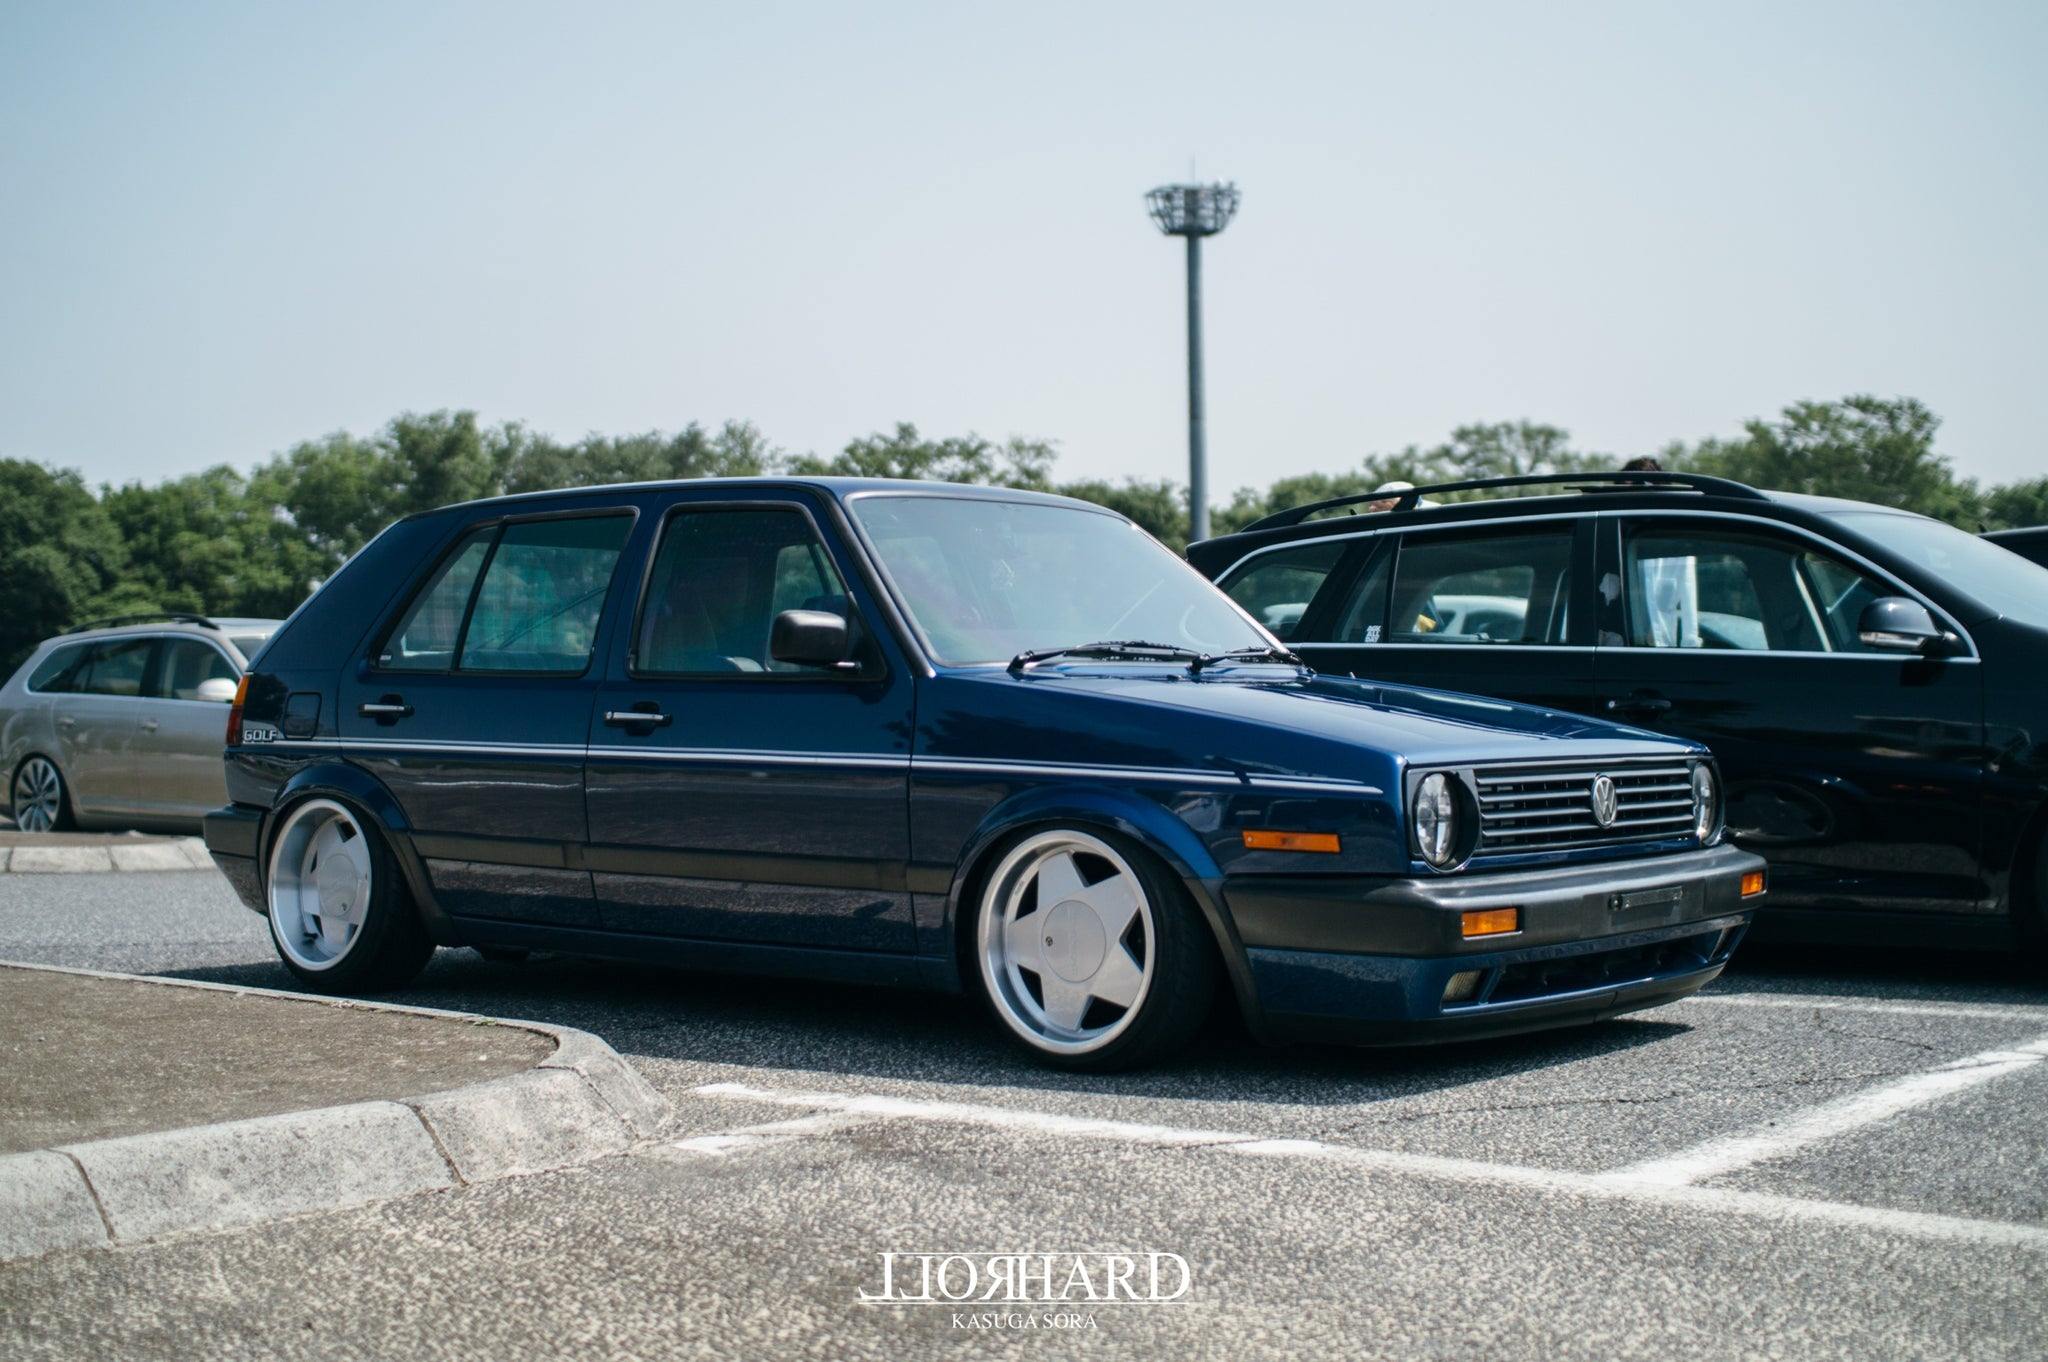 RollHard Show Coverage, VagCruise Japan, Japanese Volkswagens, VWs, modified cars, custom VWs volkswagens, bbs, borbet b, coilovers, airride, jetta, mk2 golf, mk5 golf, japanese car community, r32 golf, car culture